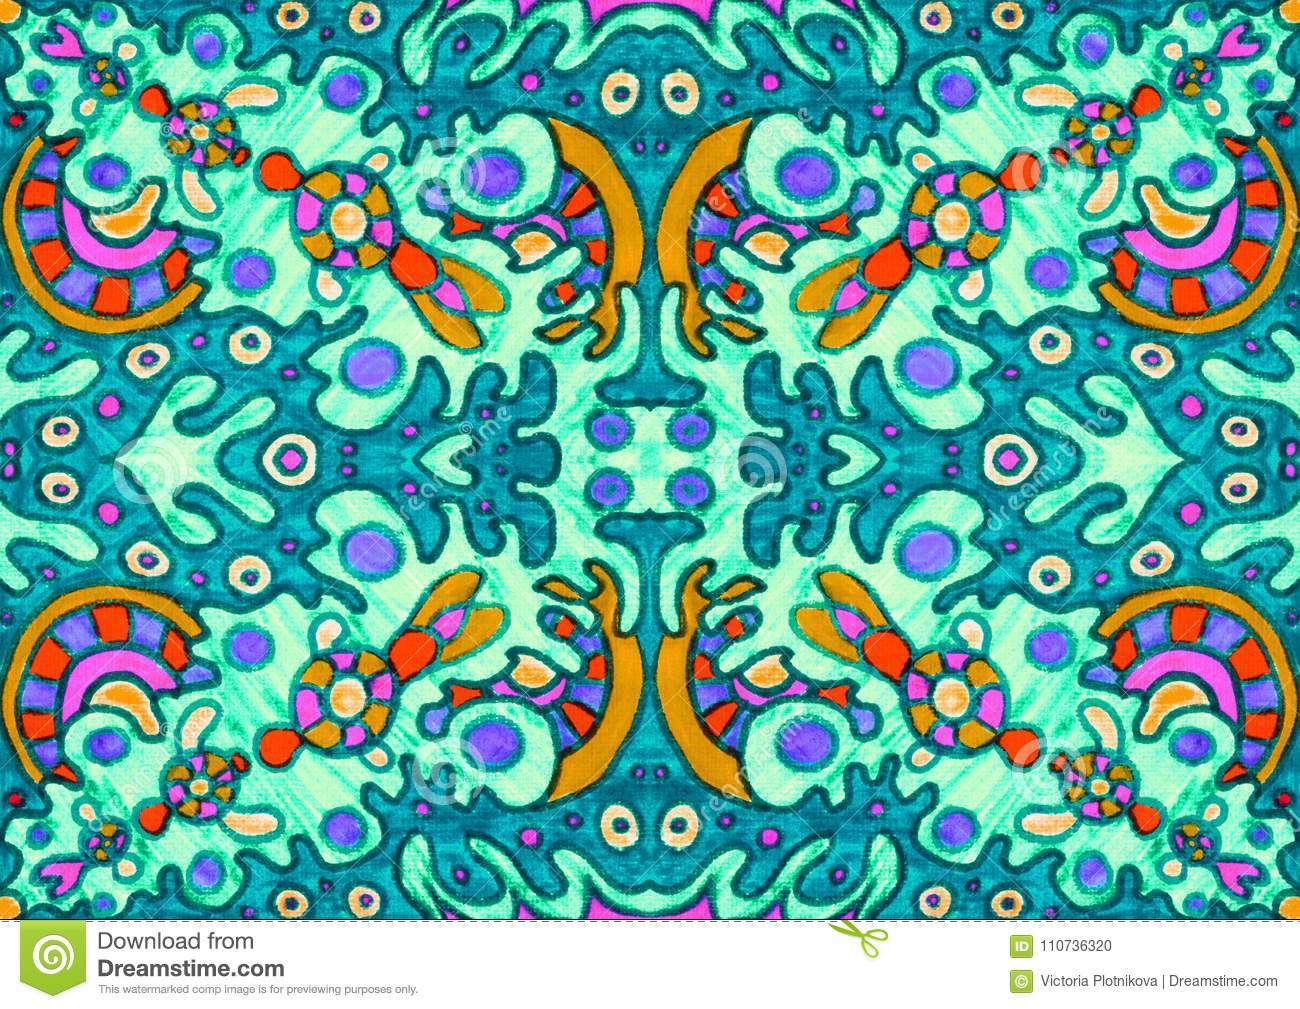 Ethnic ornament seamless pattern inspired by fusion of Ukrainian, Indian and Mexican traditional motifs